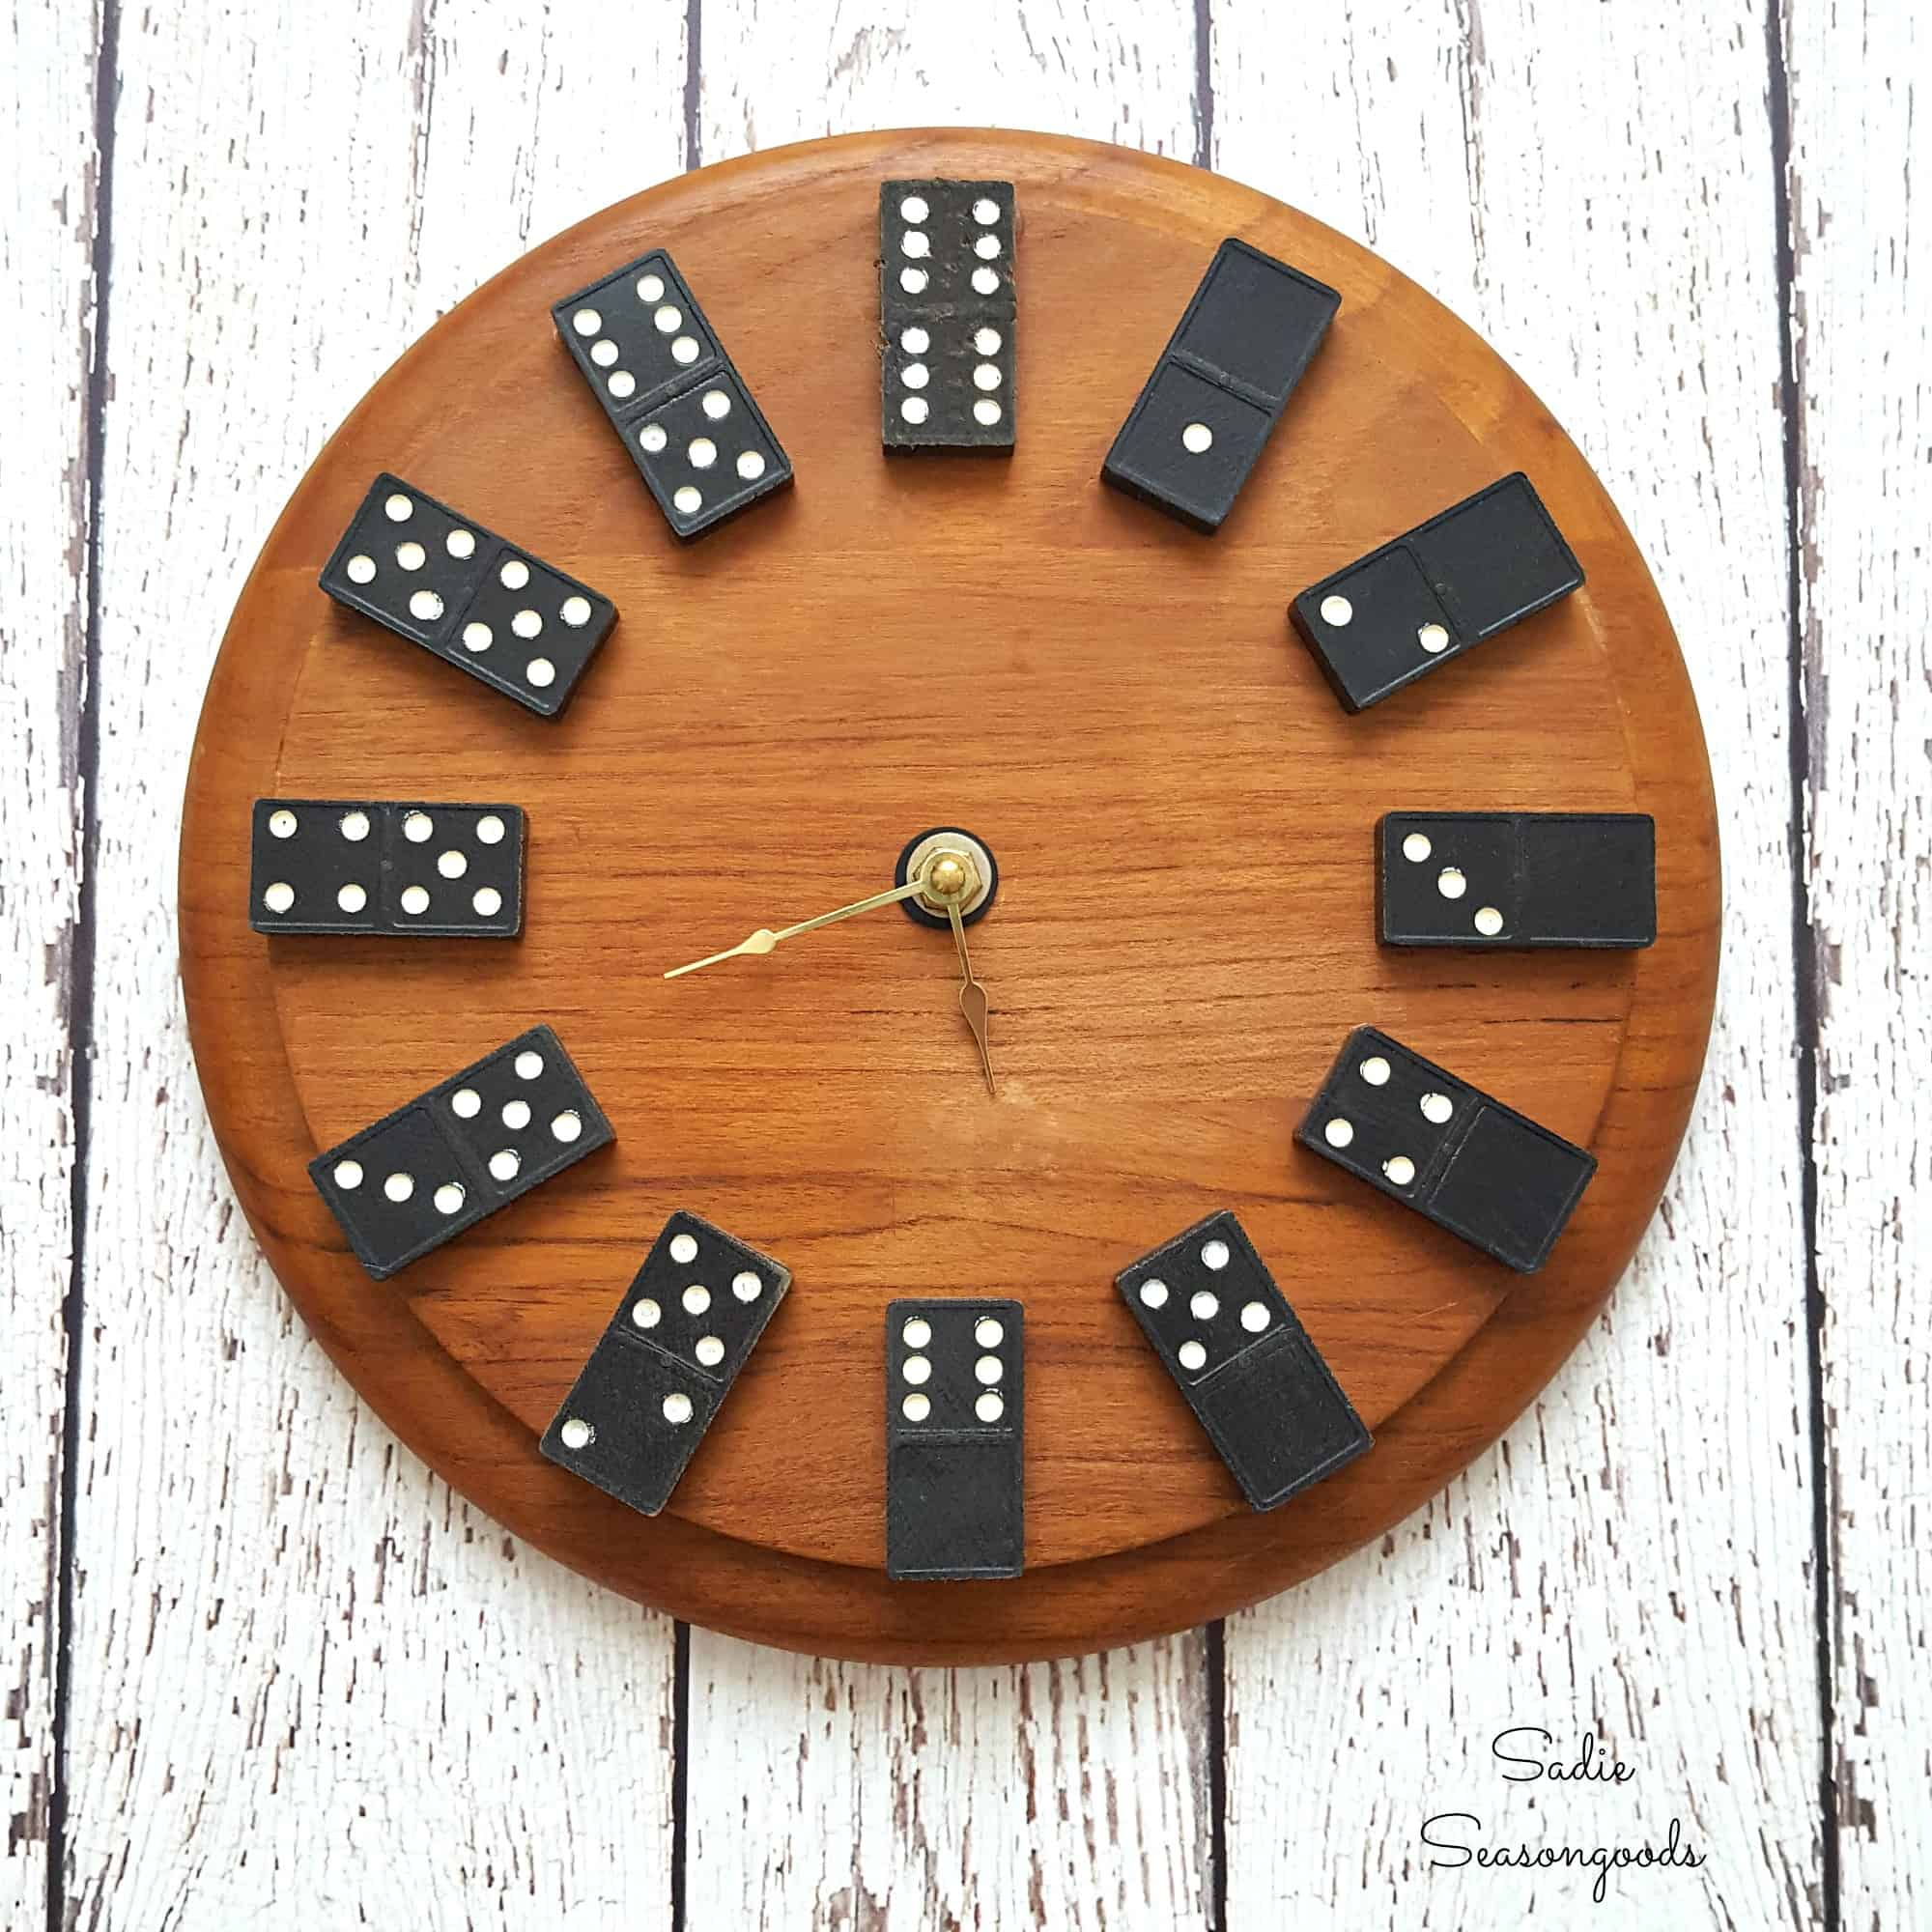 8_diy_upcycled_repurposed_vintage_domino_and_thrift_store_cutting_board_wall_clock_by_sadie_seasongoods.jpg